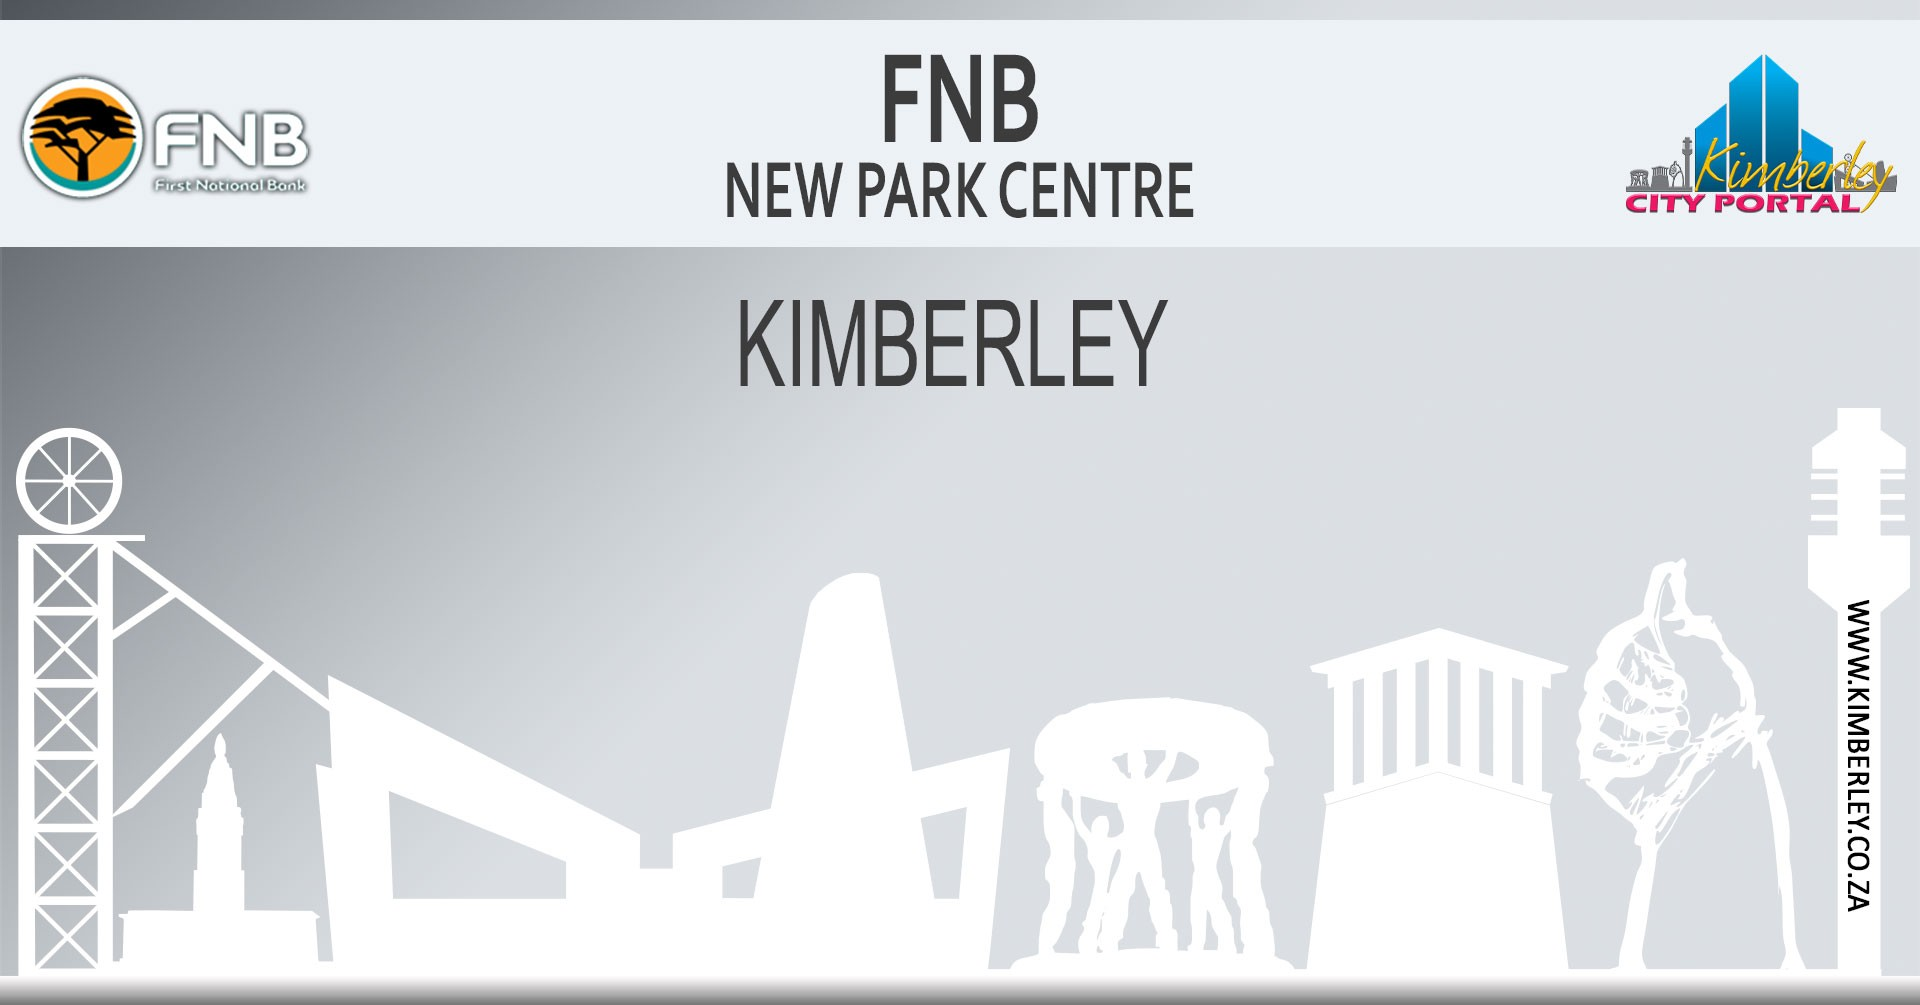 First National Bank - New Park Centre • Kimberley • CITY PORTAL